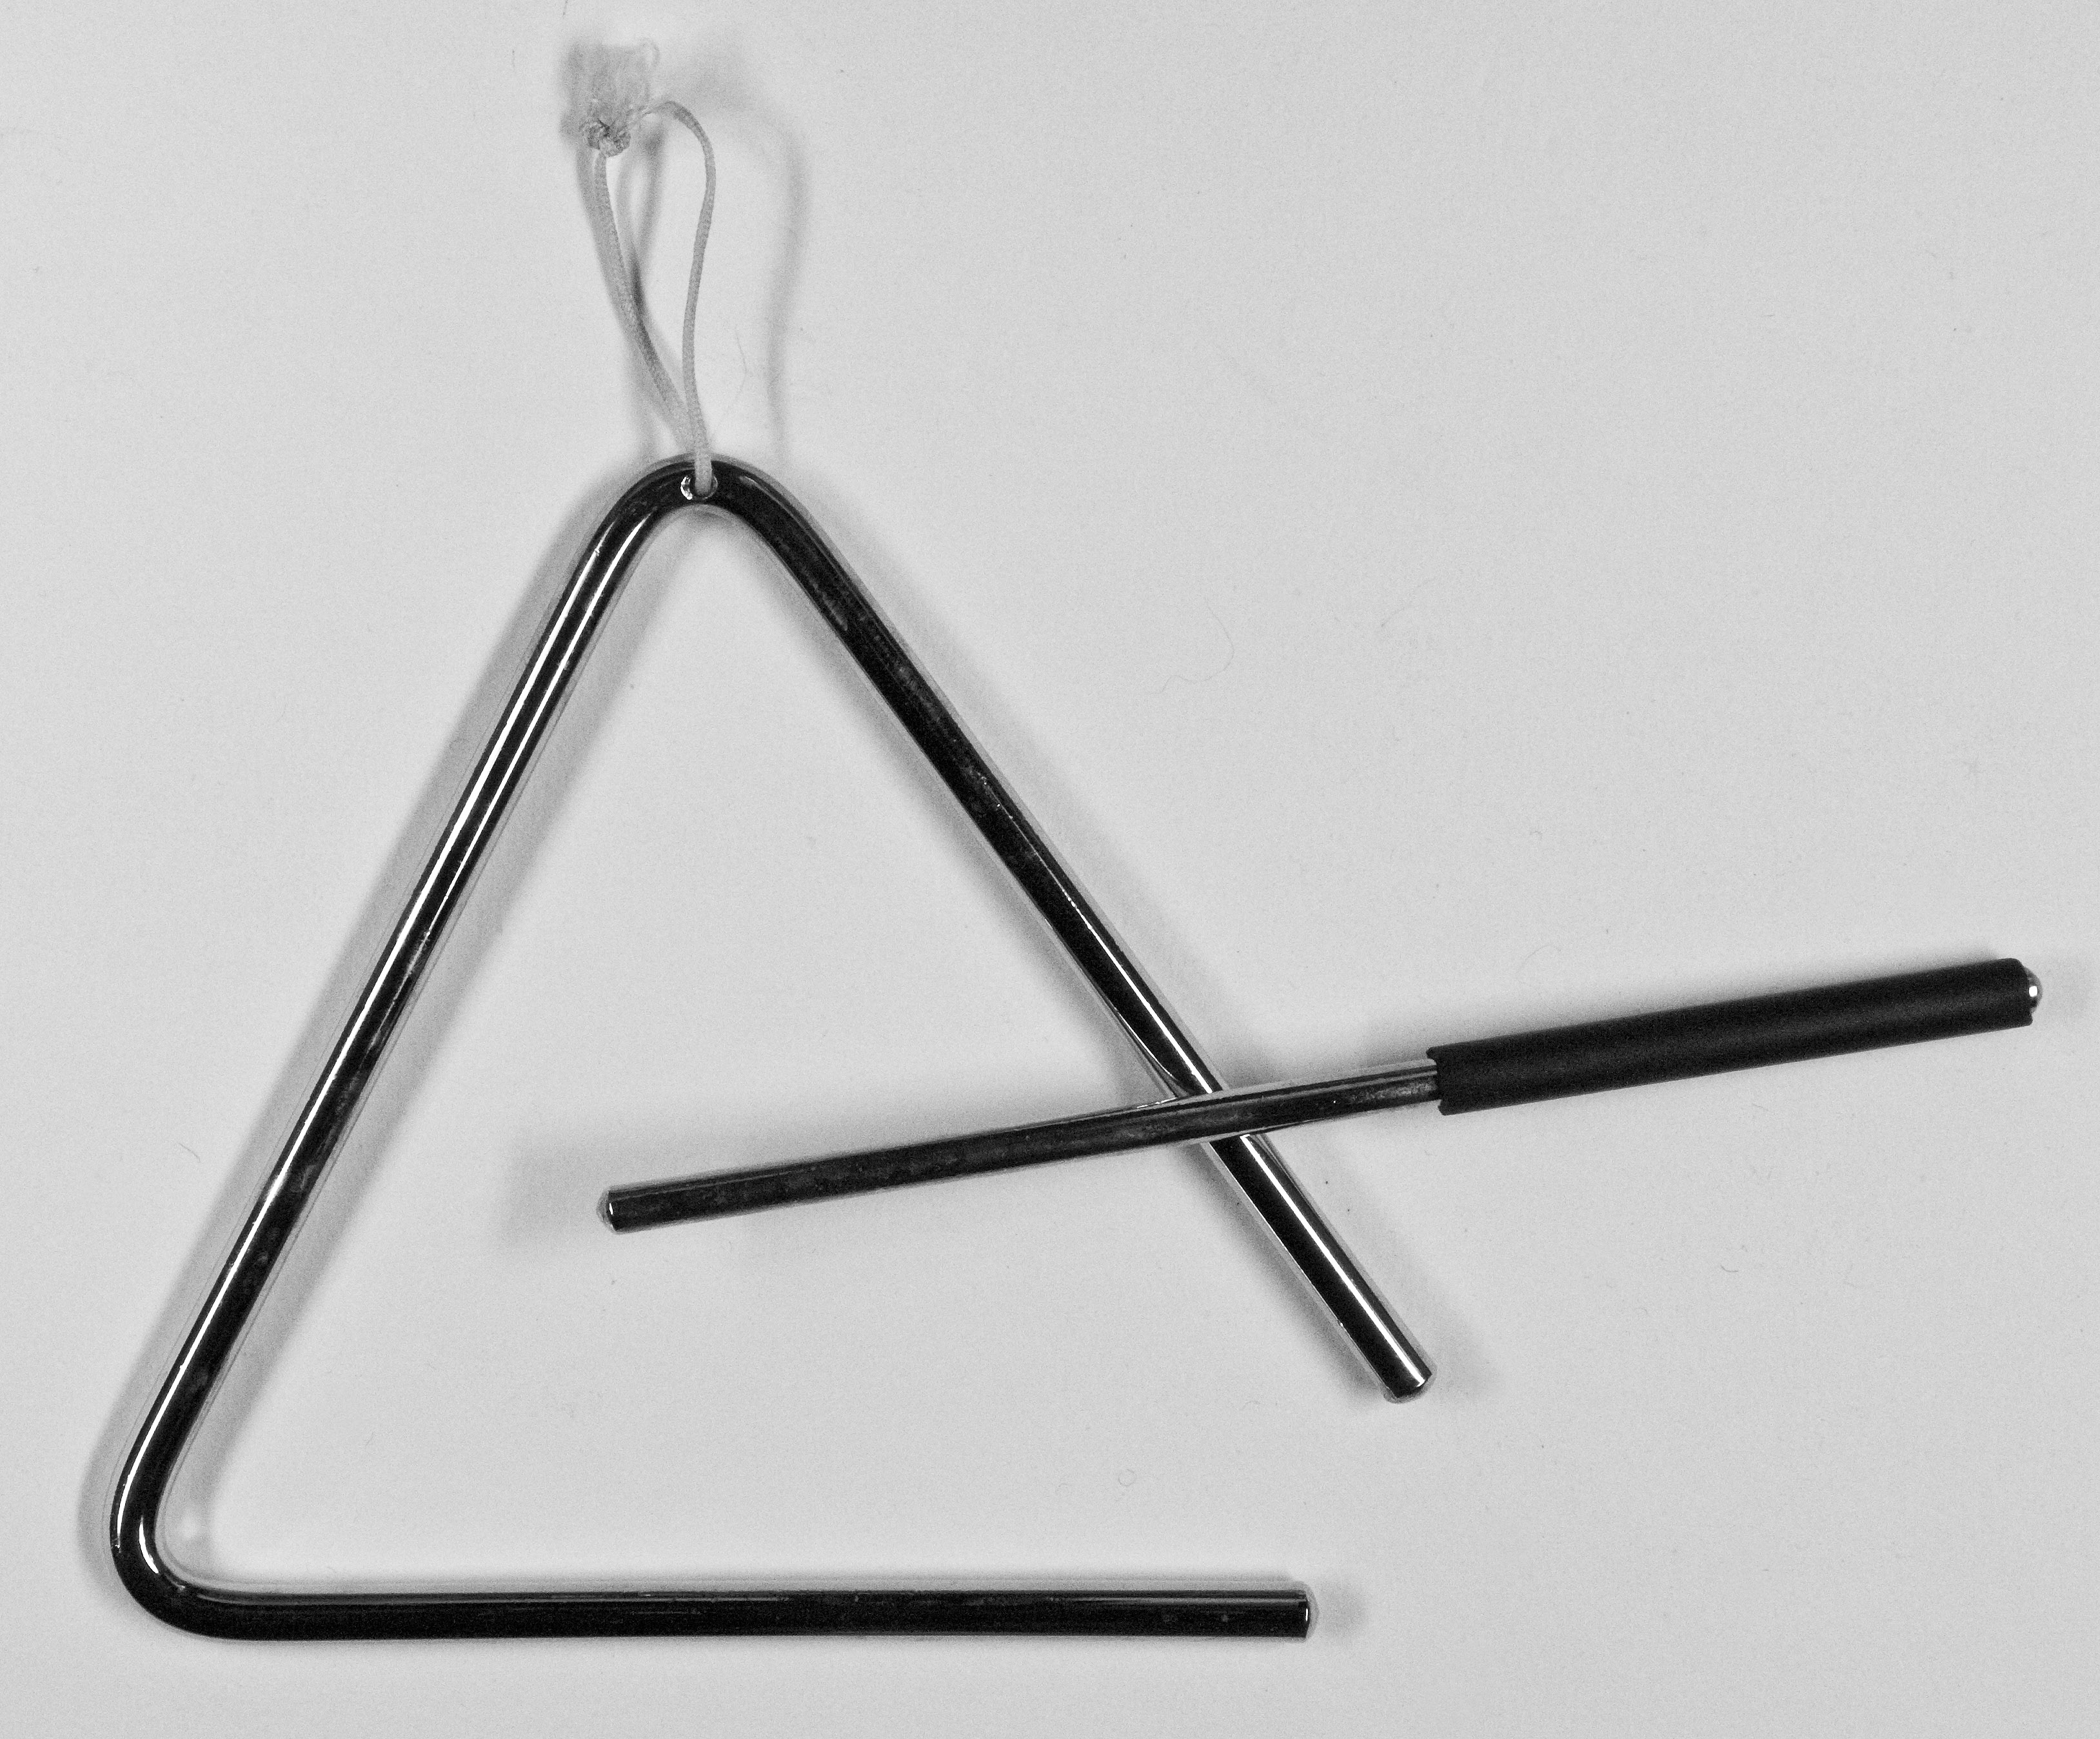 Triangle Instrument Wallpapers